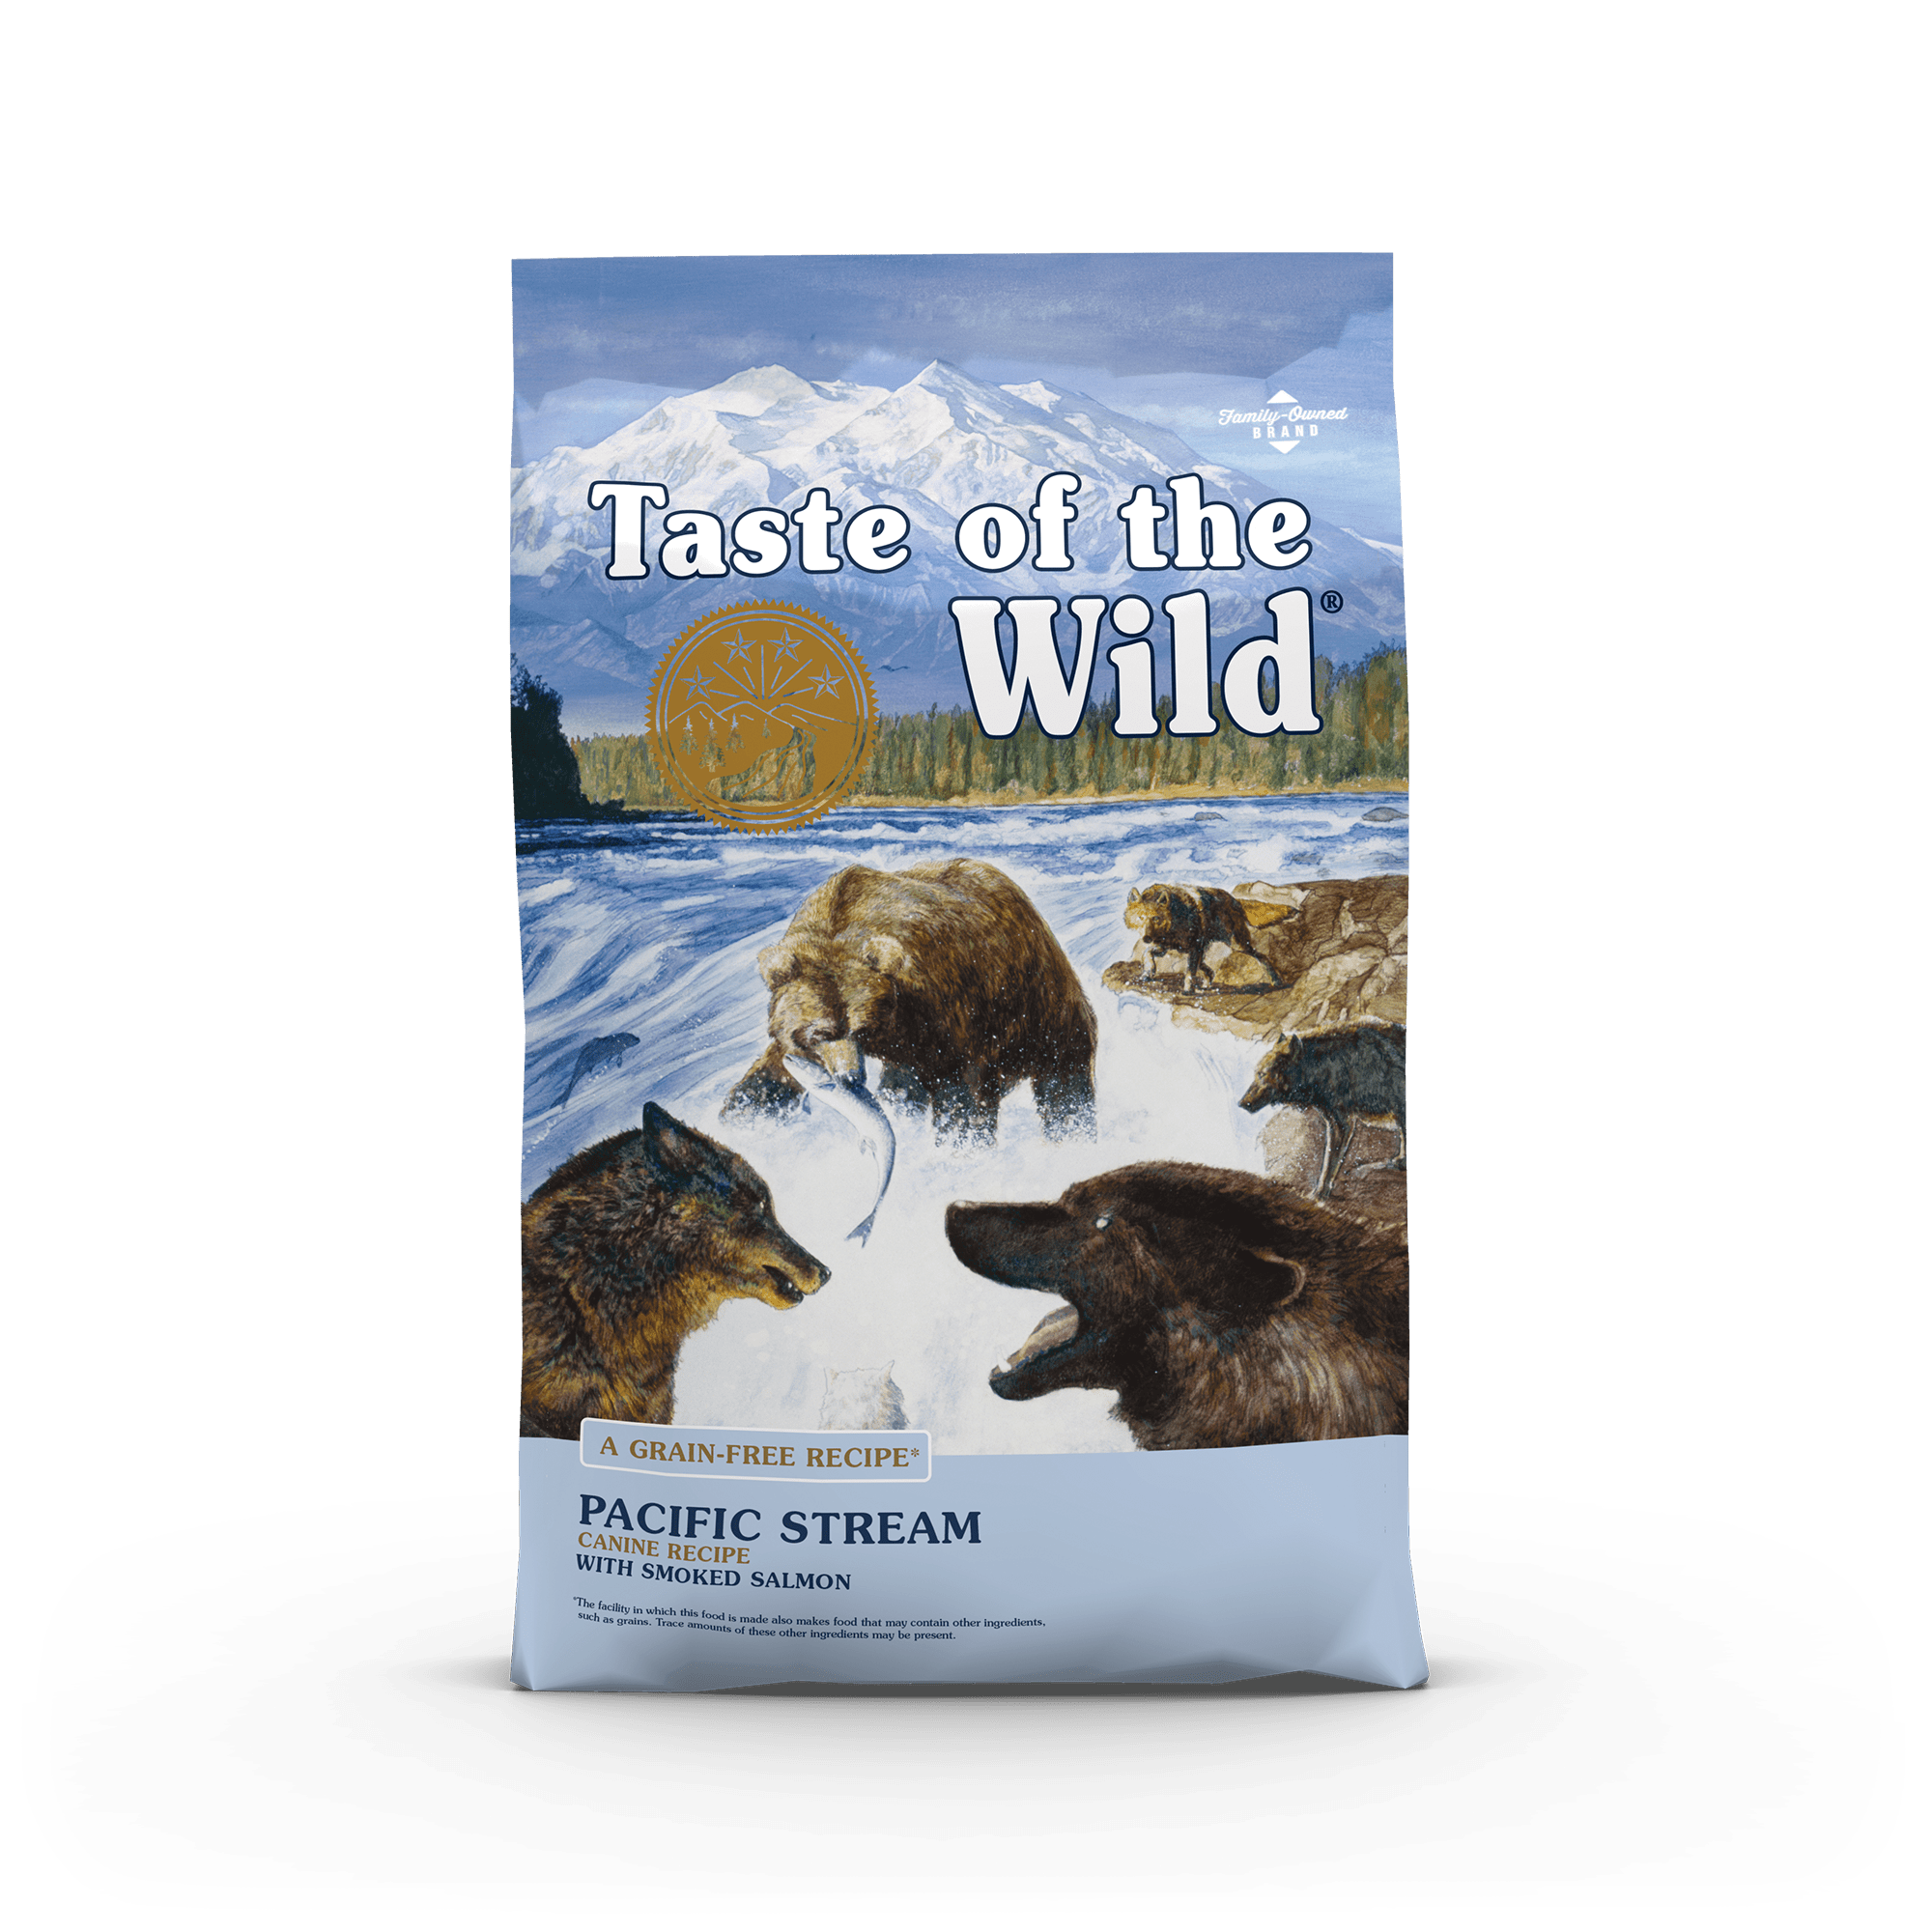 Pacific Stream Canine Recipe with Smoked Salmon Image